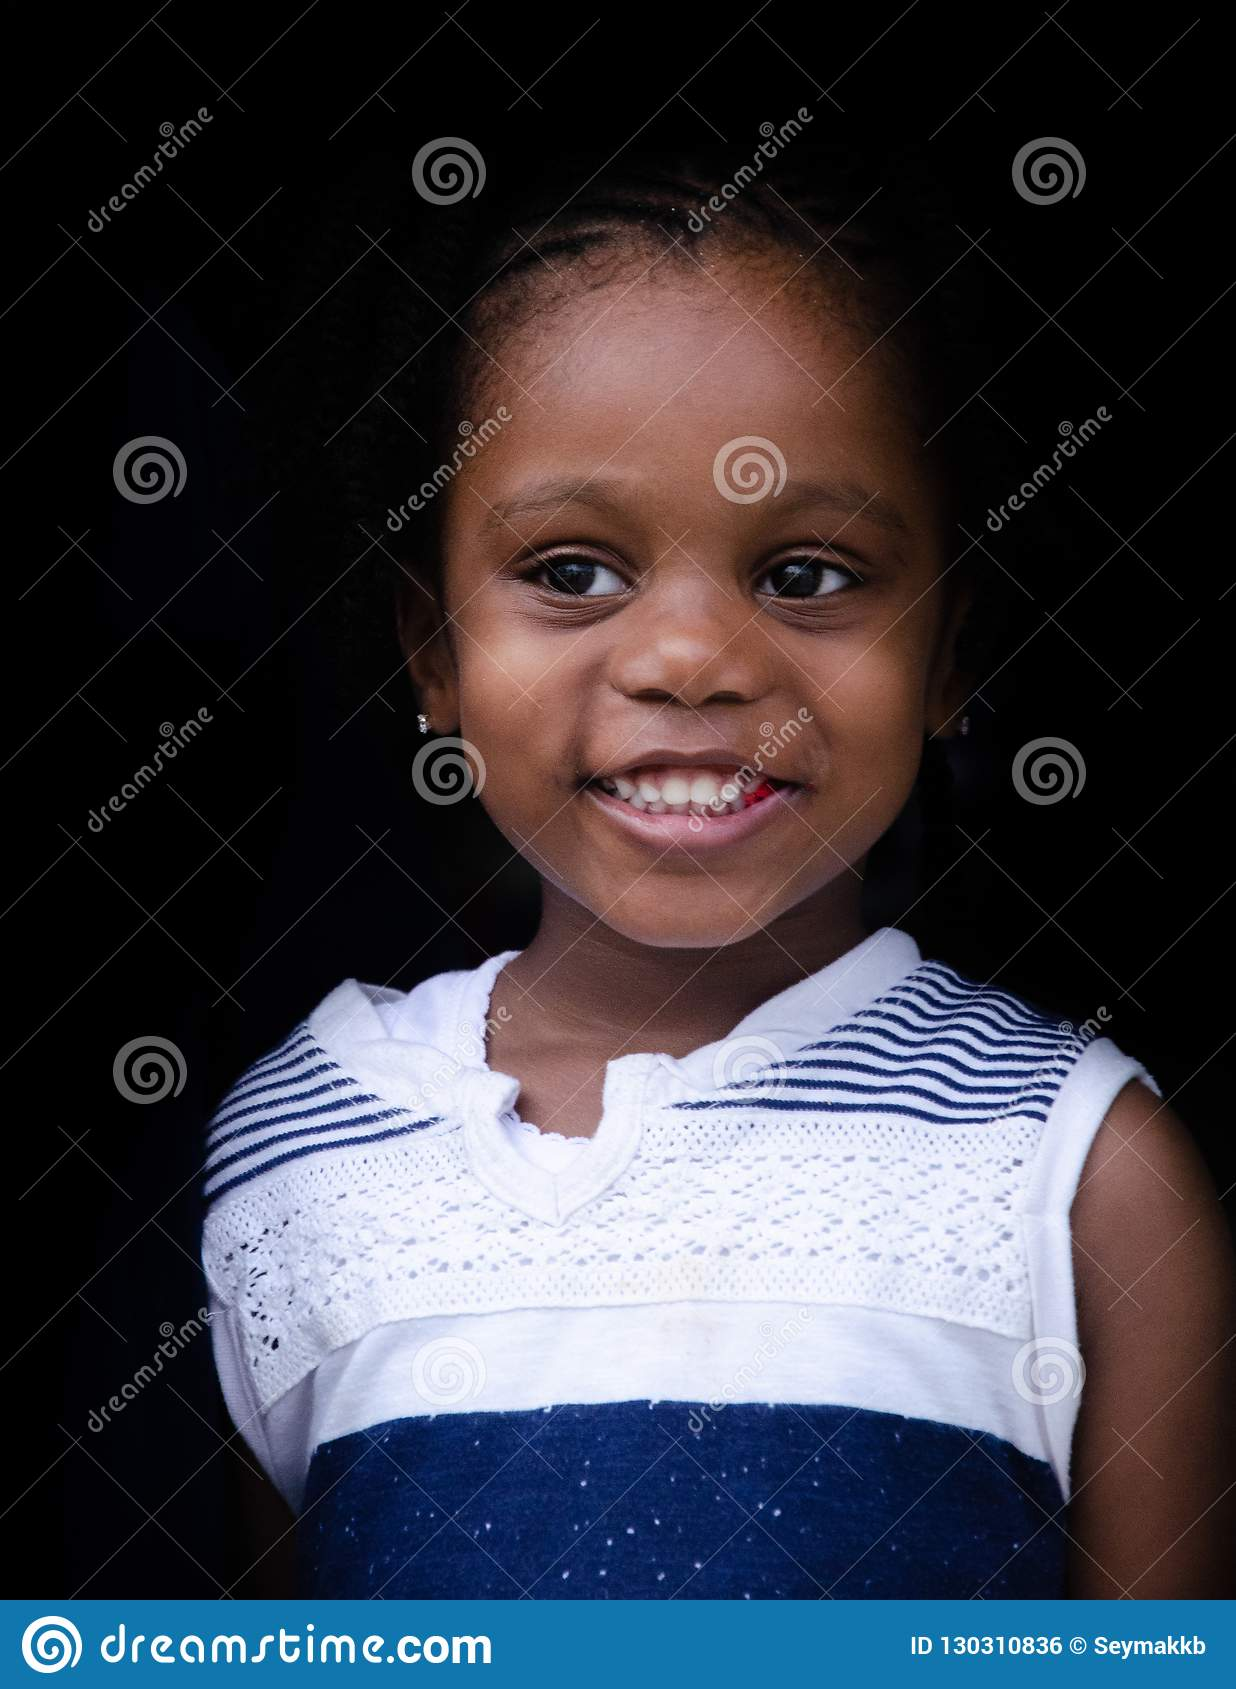 A Little Cute, Black Girl from Bahamas